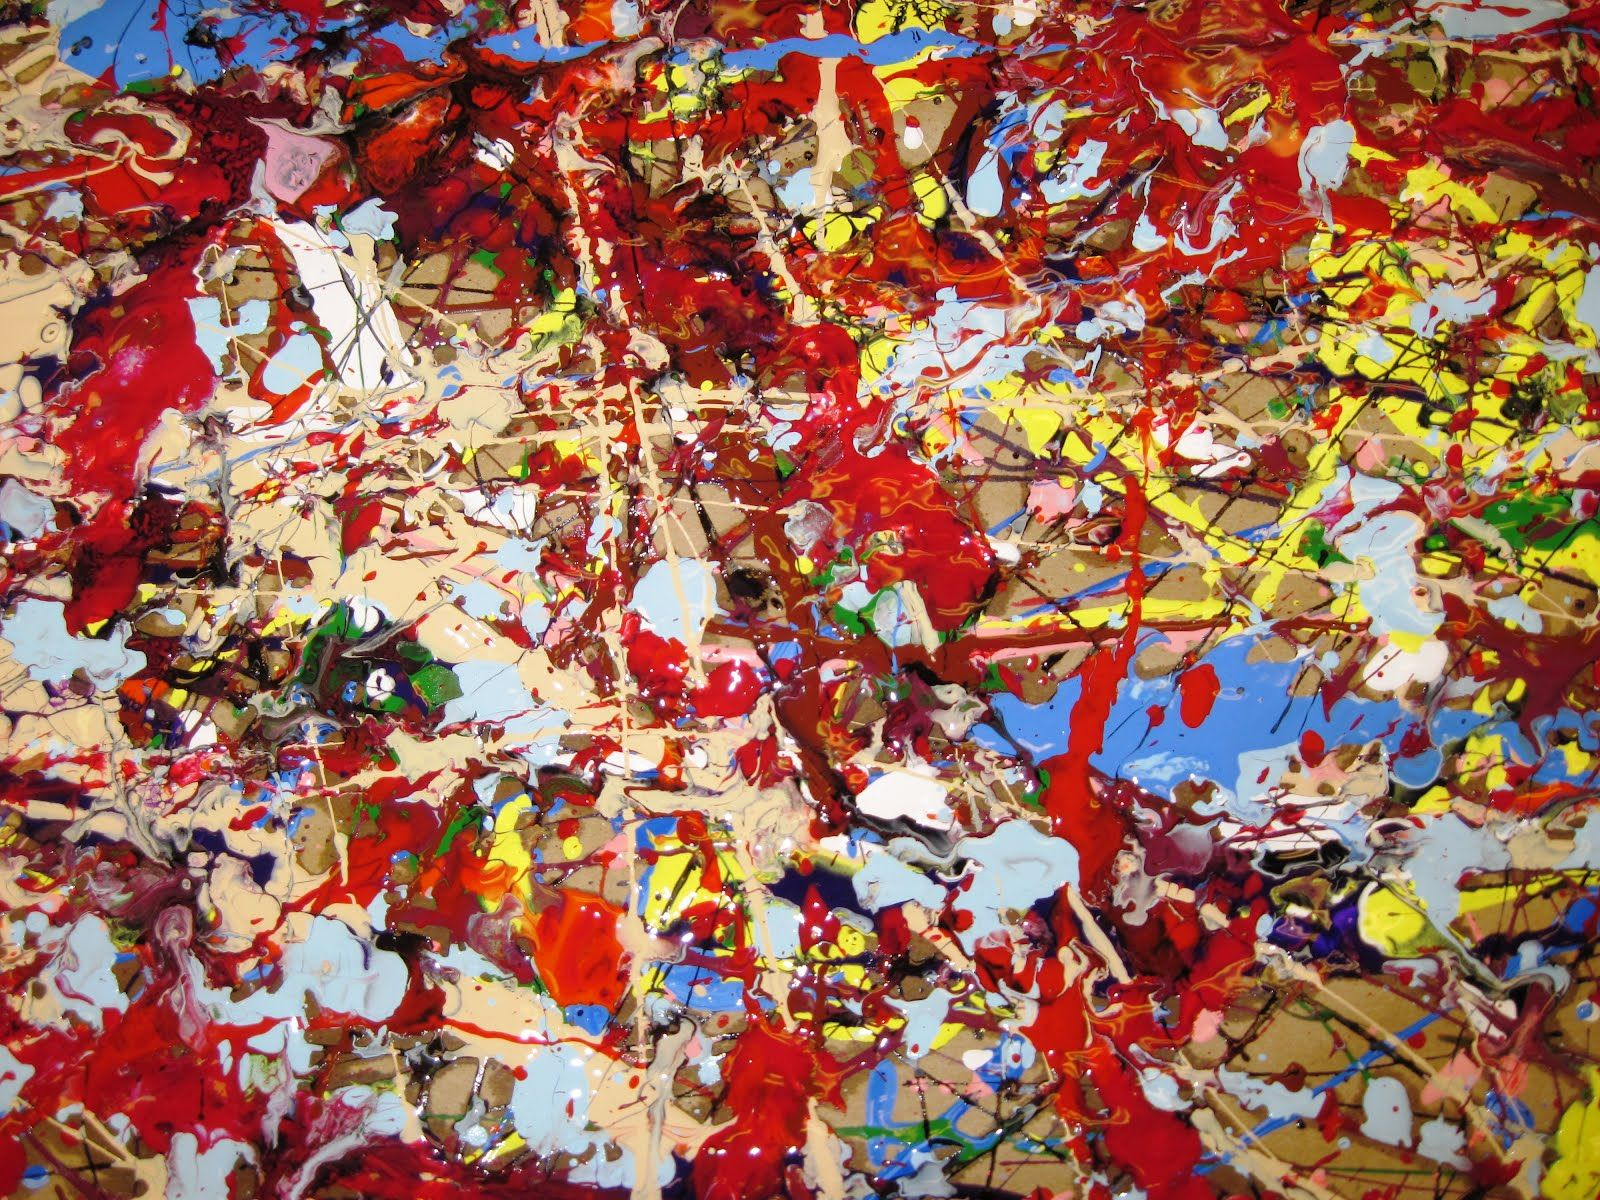 an essay on jackson pollack and blue poles Start studying jackson pollock - blue poles learn vocabulary, terms, and more with flashcards, games, and other study tools.